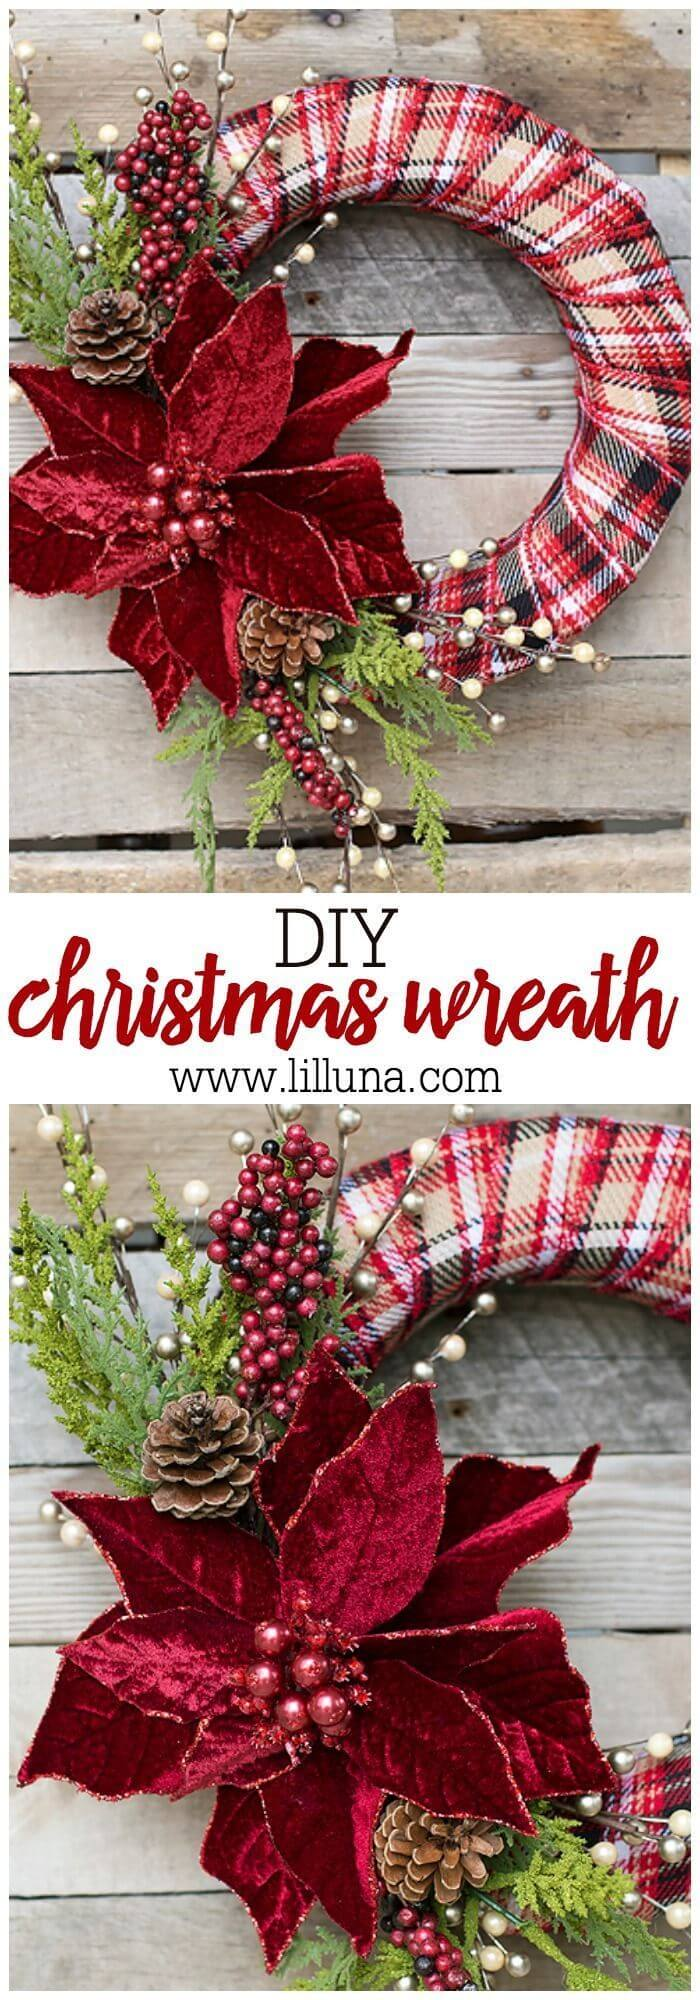 DIY Plaid and Poinsettia Xmas Craft